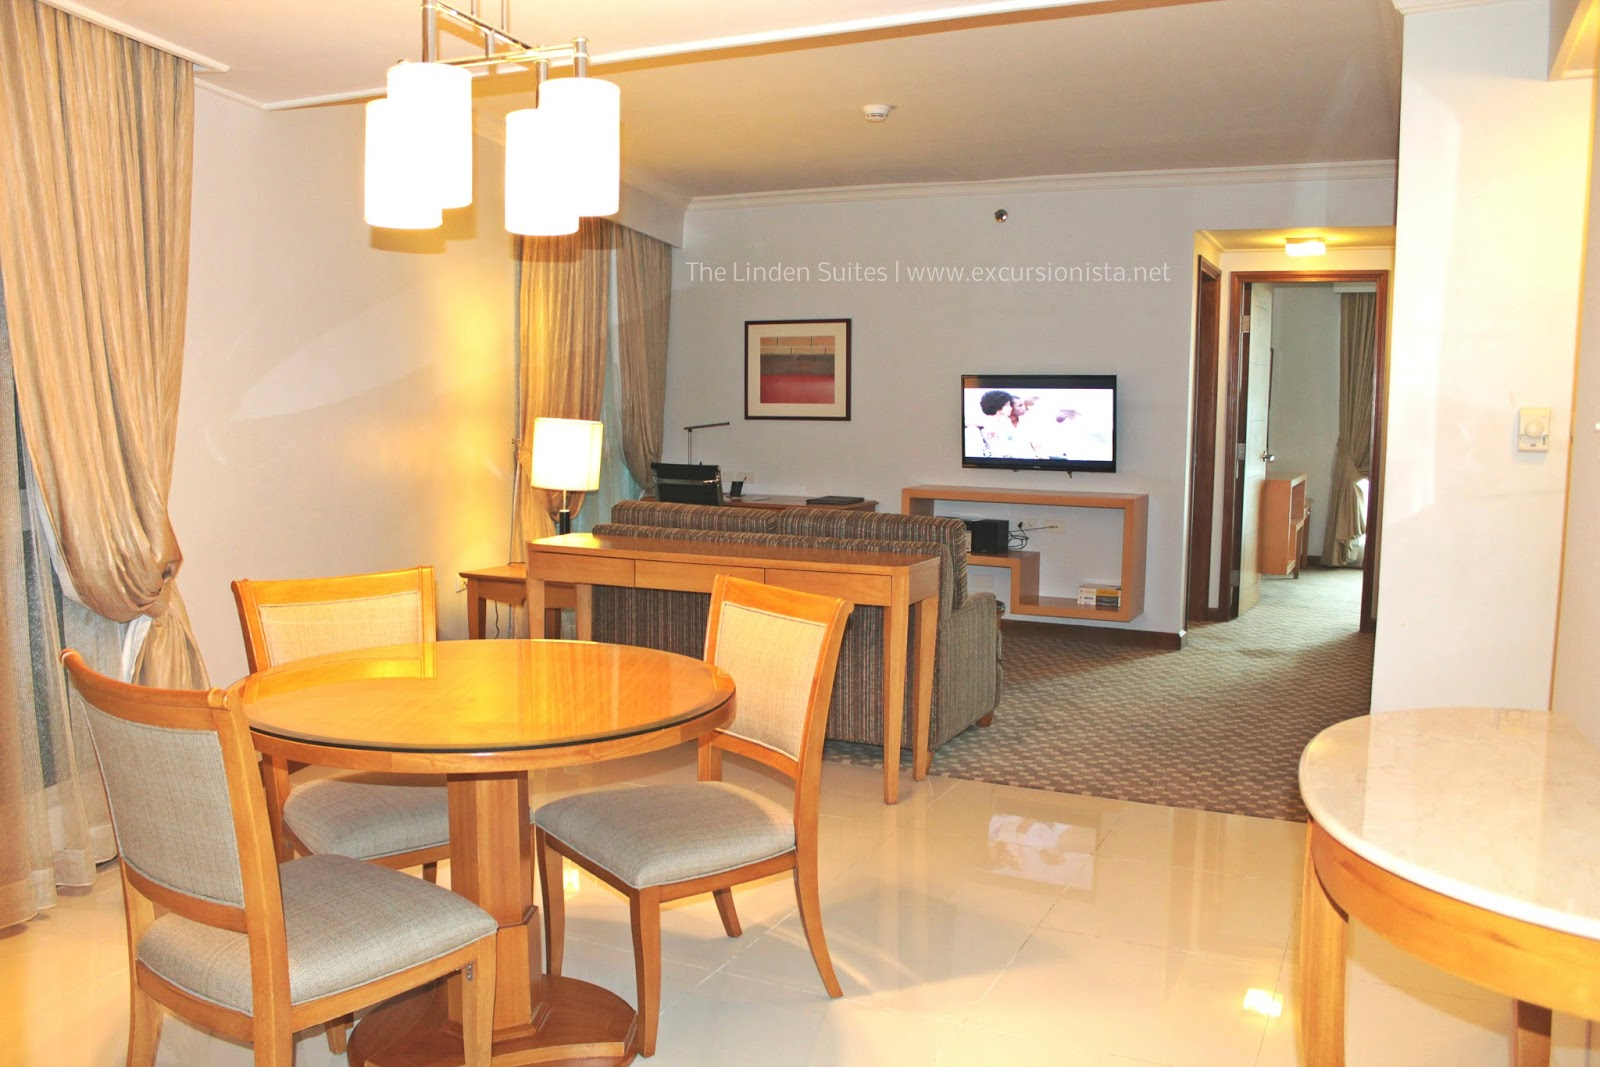 The Linden Suites An Ideal Place To Bond With Family And